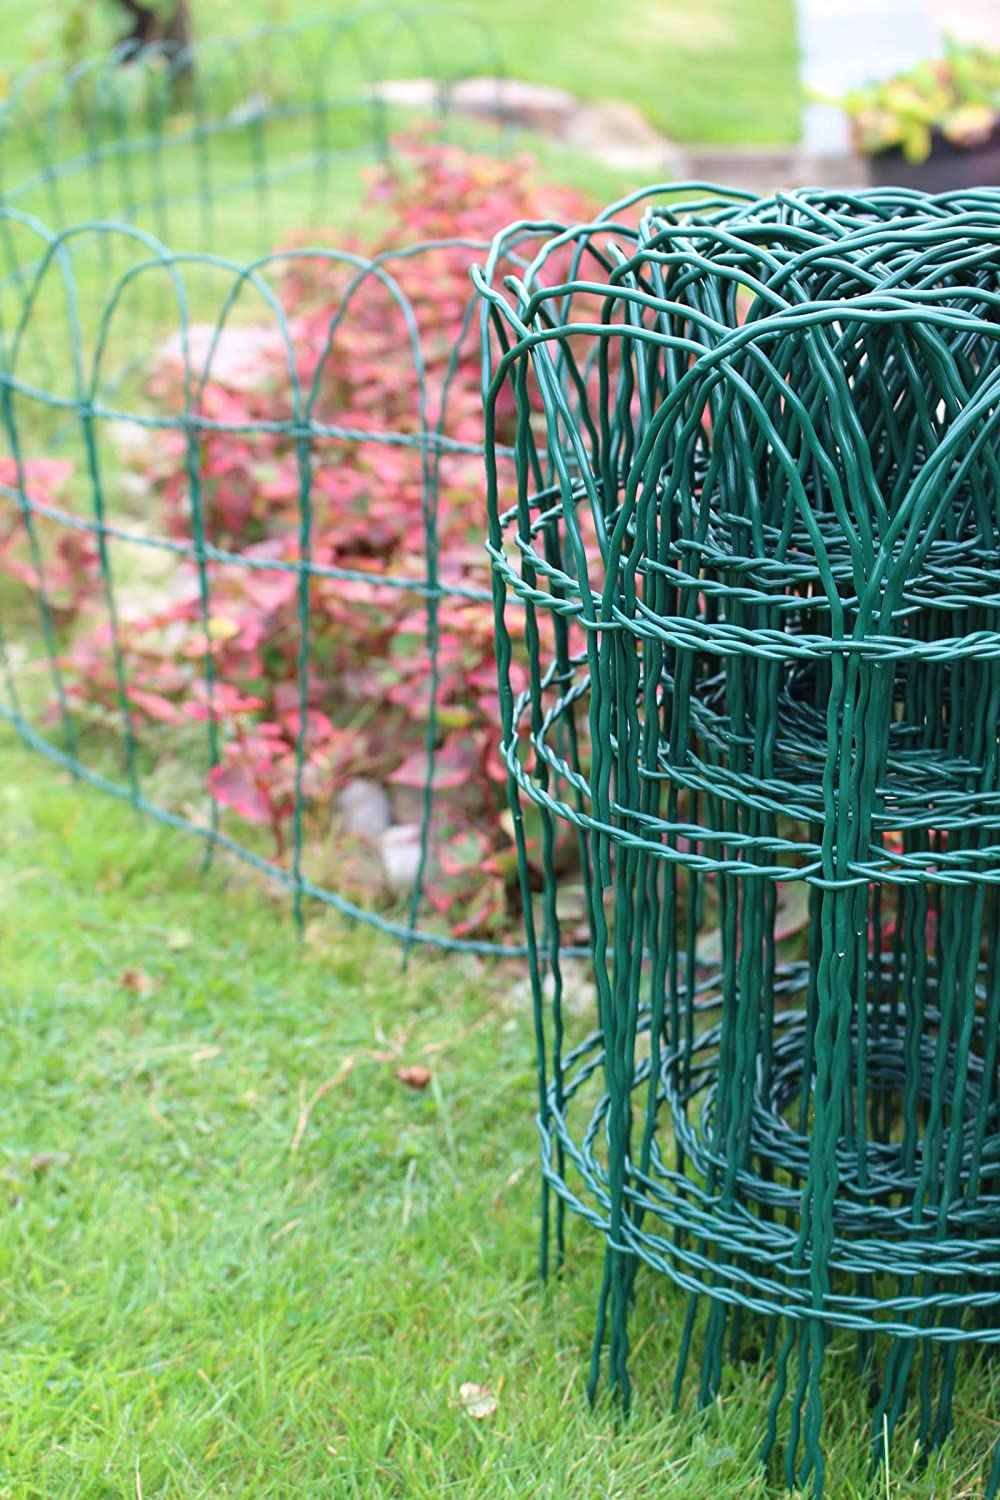 Garden Border Lawn Edging 10m X 400mm Or 650mm PVC Coated Green Wire Fencing  (1, 400mm Height 512): Amazon.co.uk: Garden U0026 Outdoors